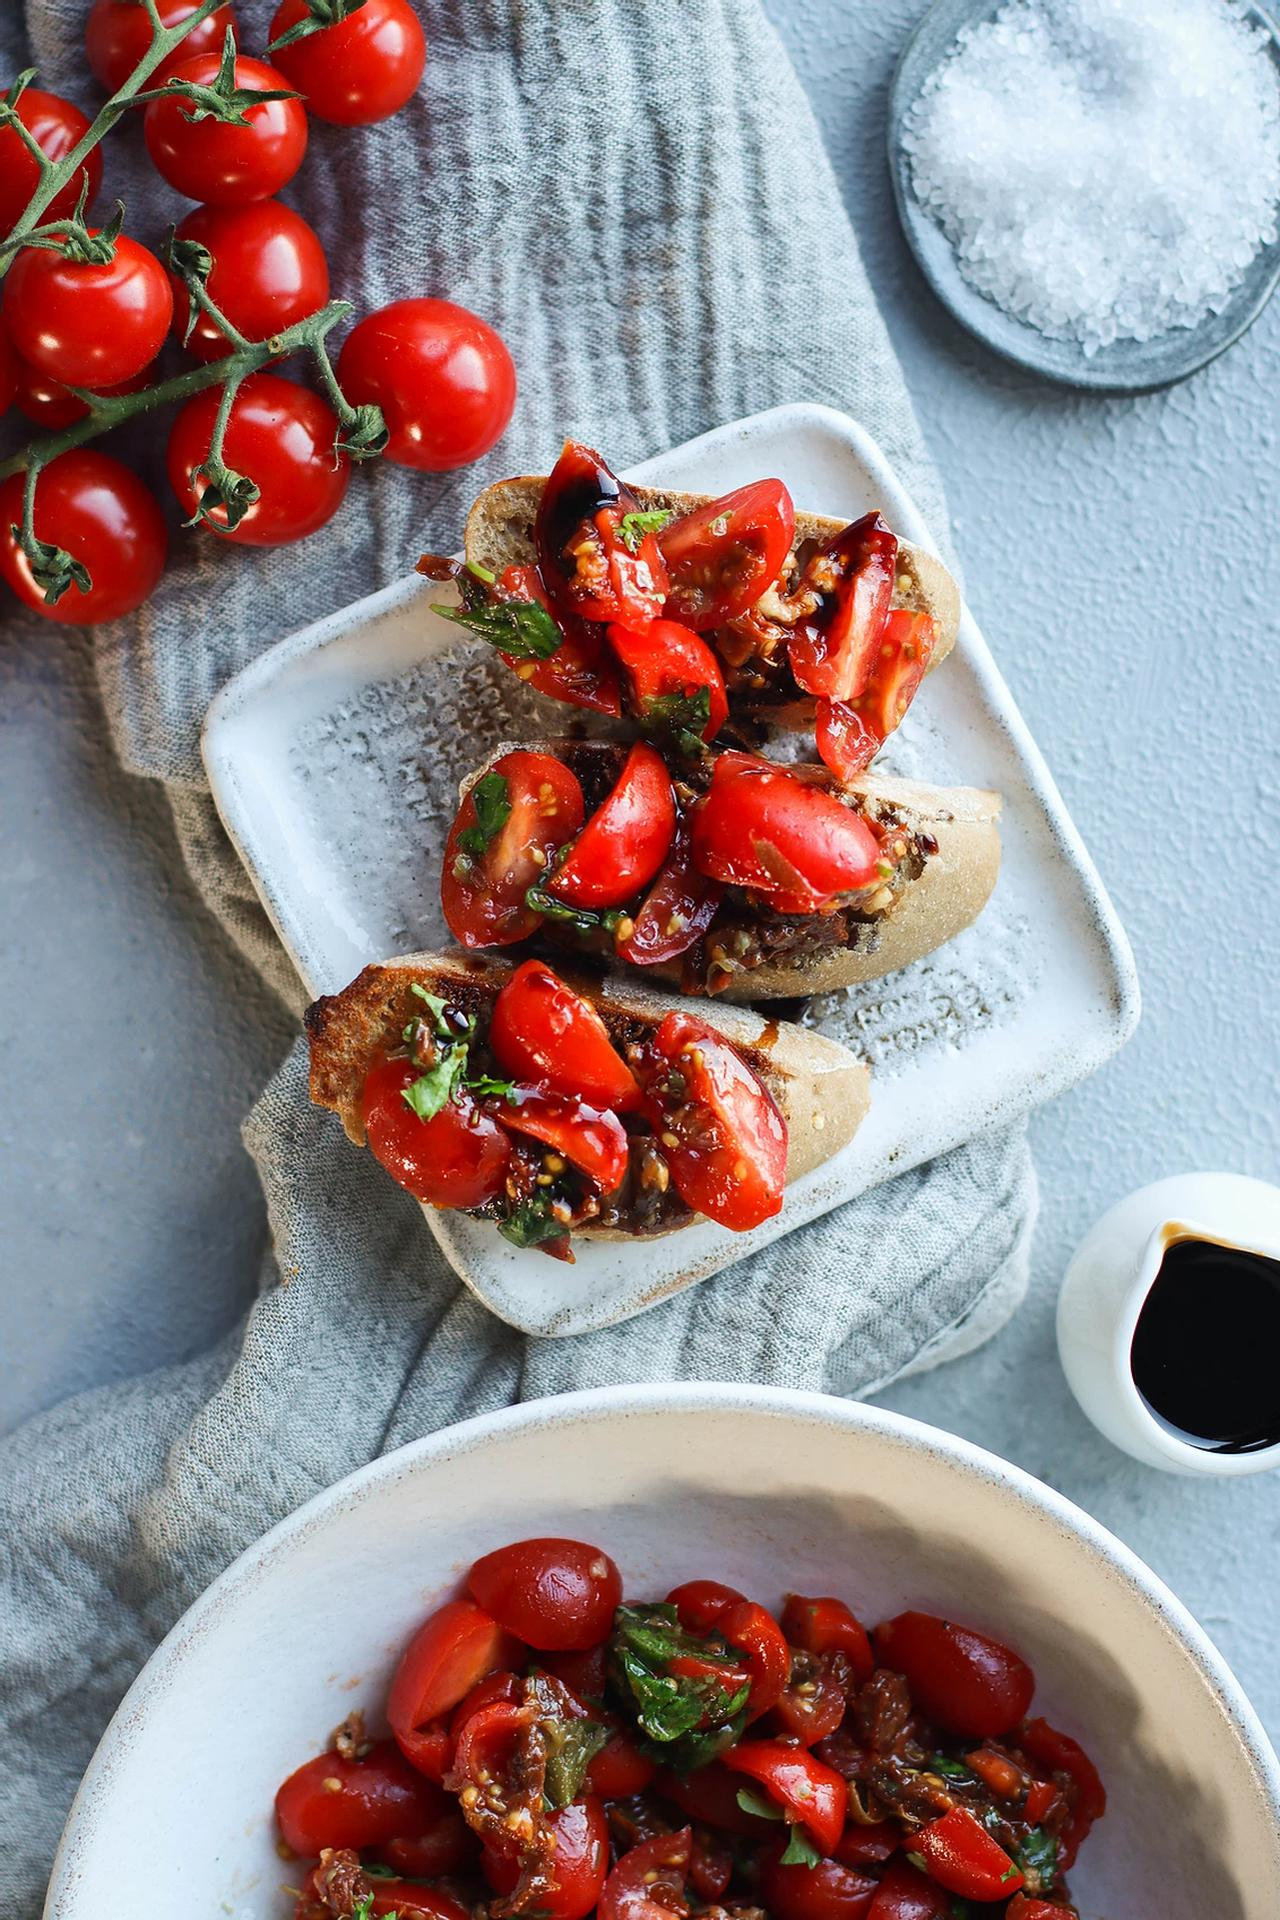 Main image of Double Tomato Bruschetta with Balsamic Reduction